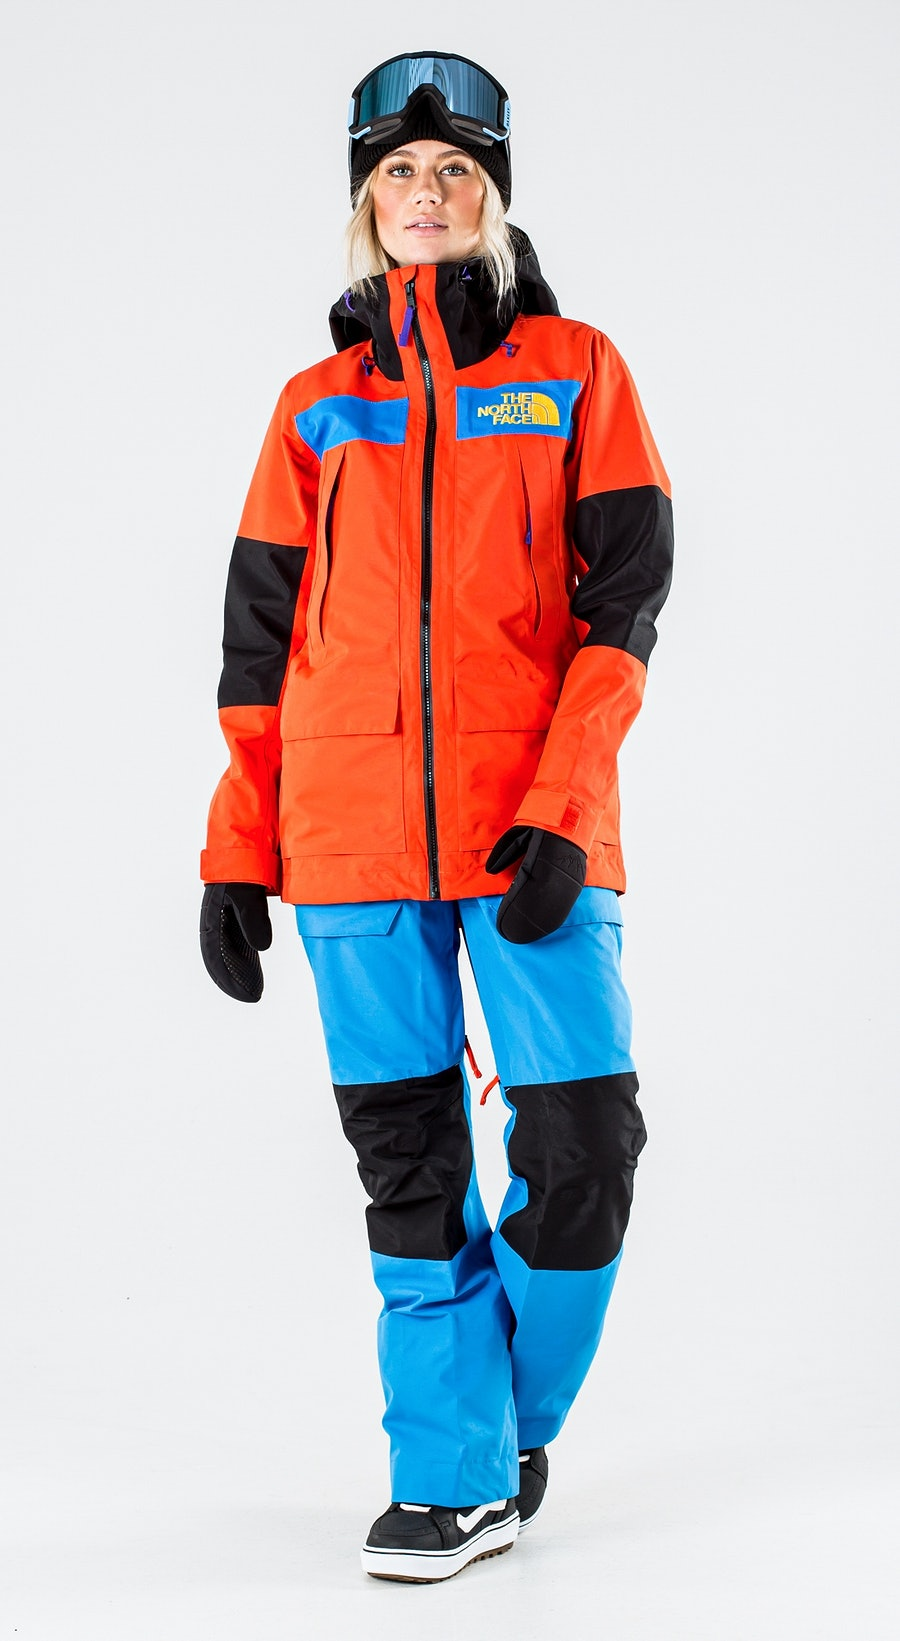 The North Face Team Kit Flare/Bomber Blue/Tnf Blk Snowboardkläder Multi